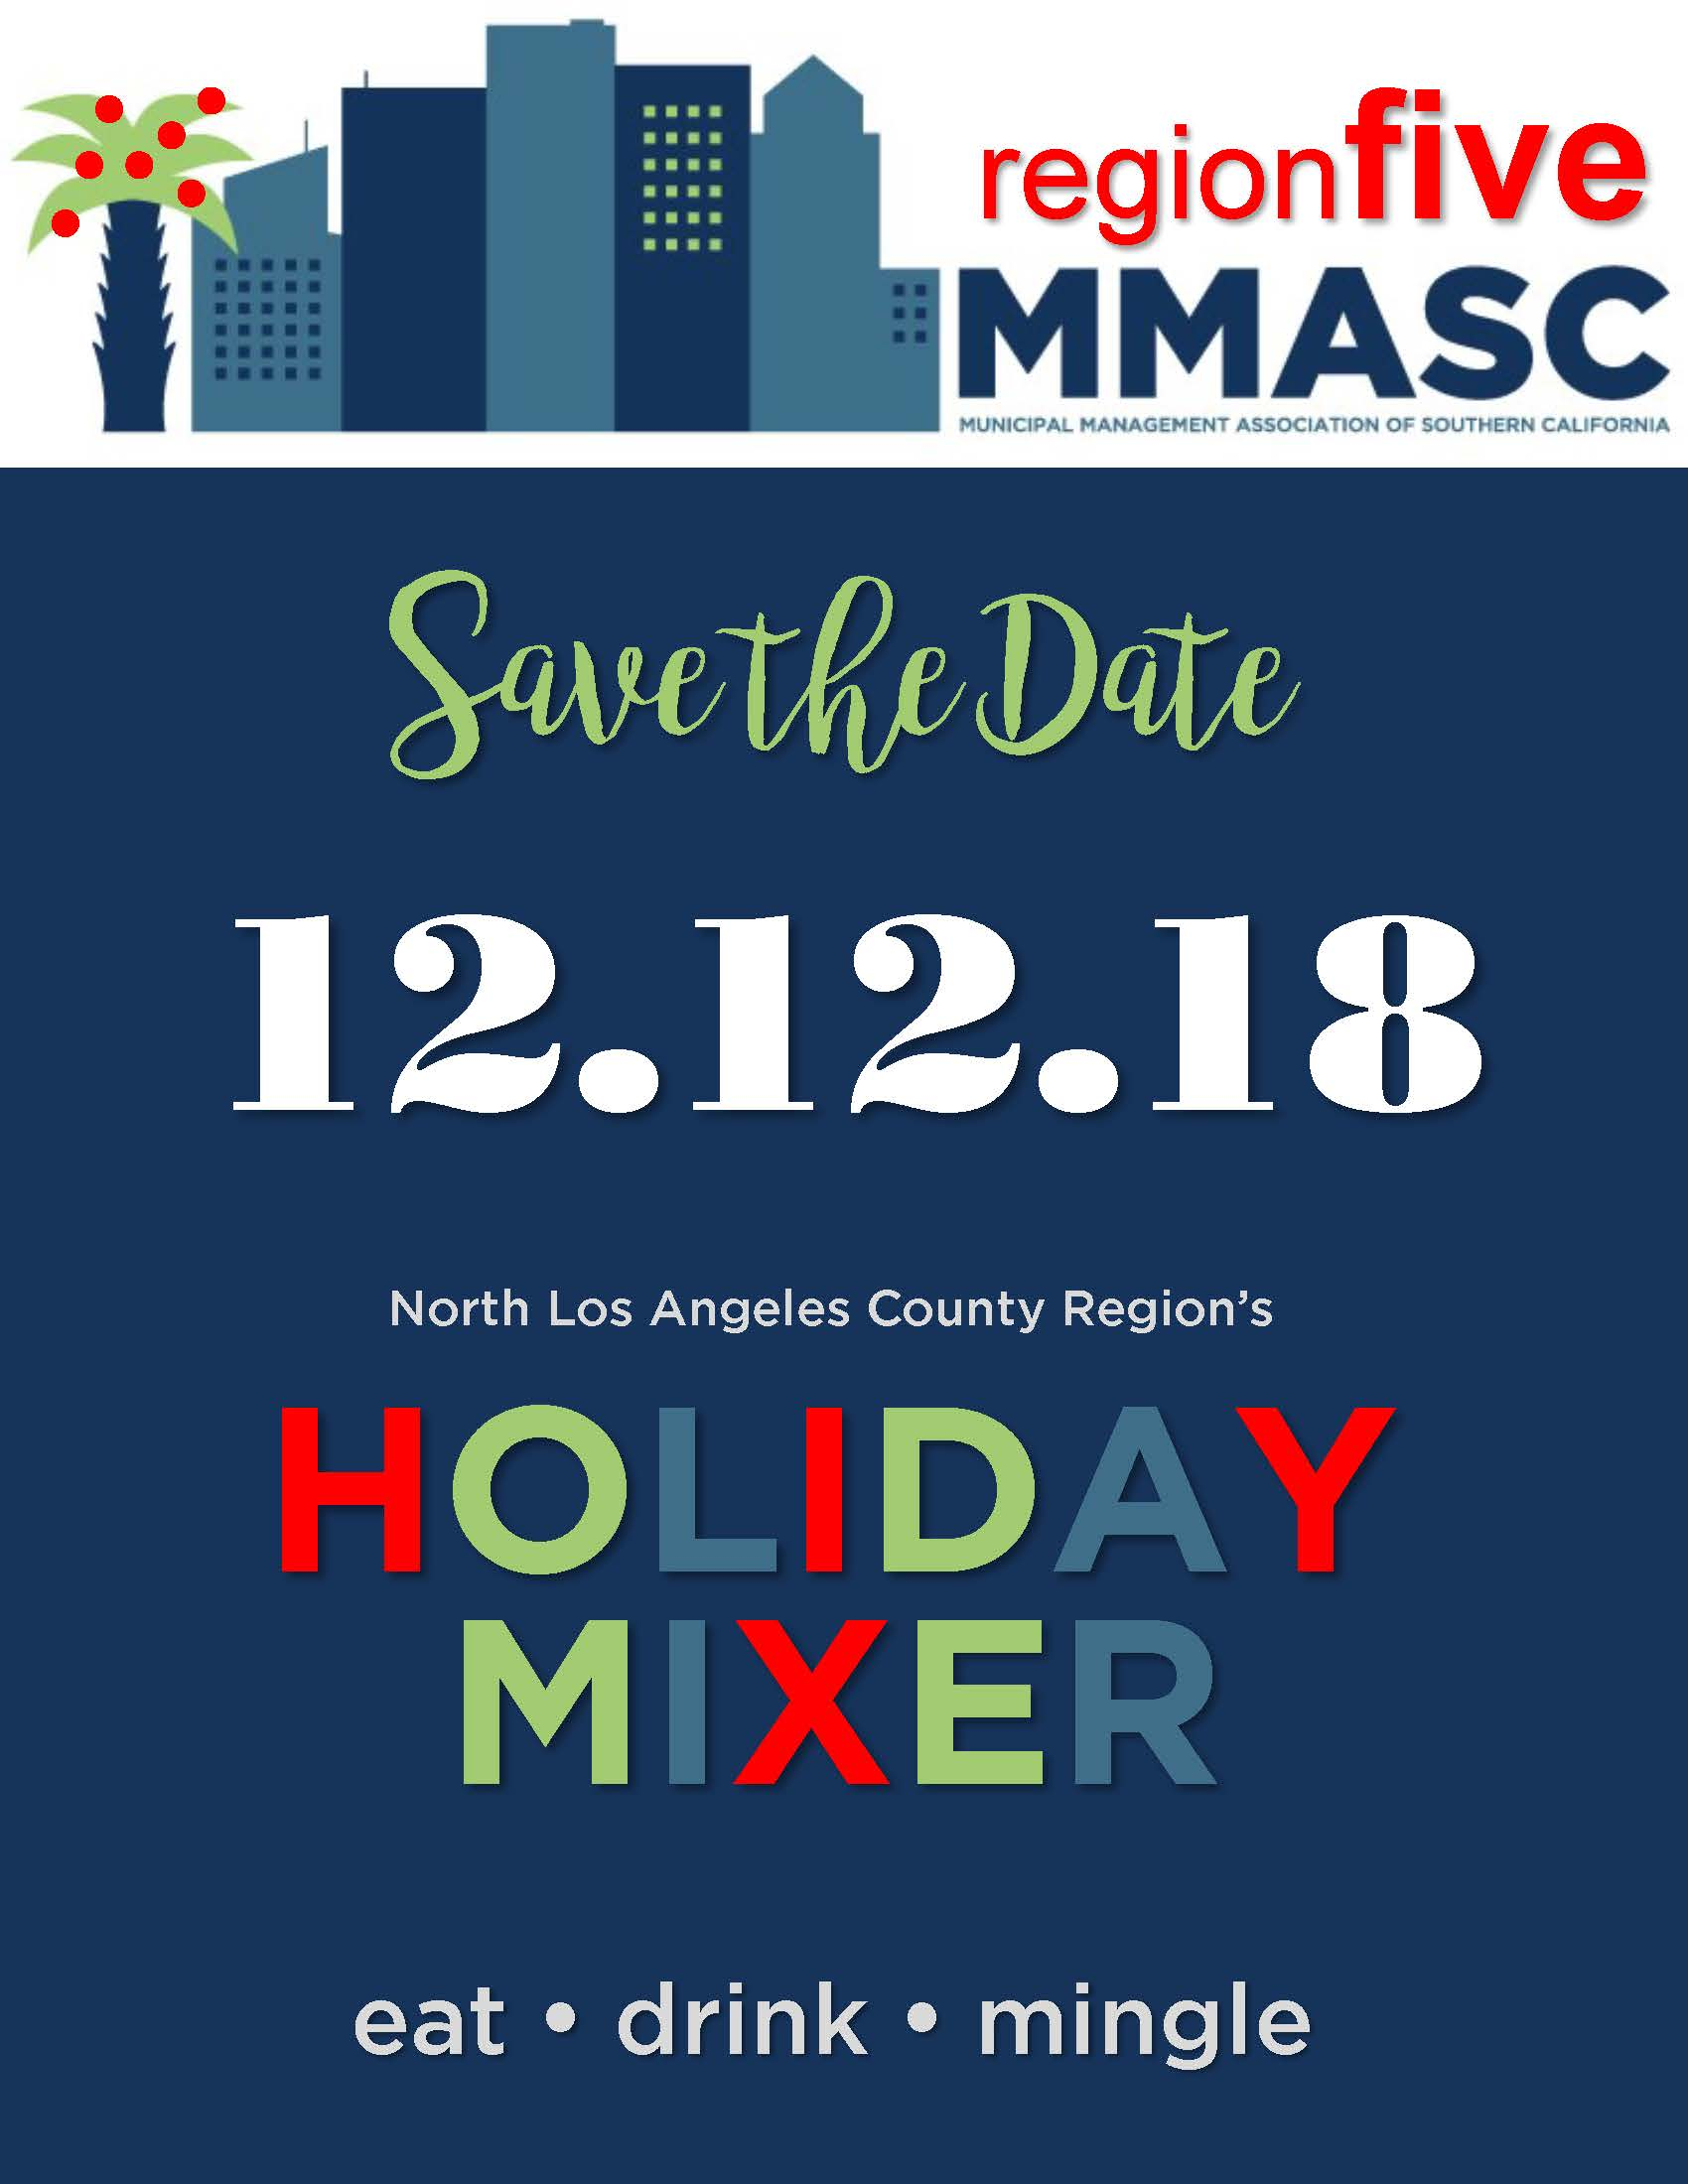 2018 North LA Holiday Mixer Save the Date Flyer